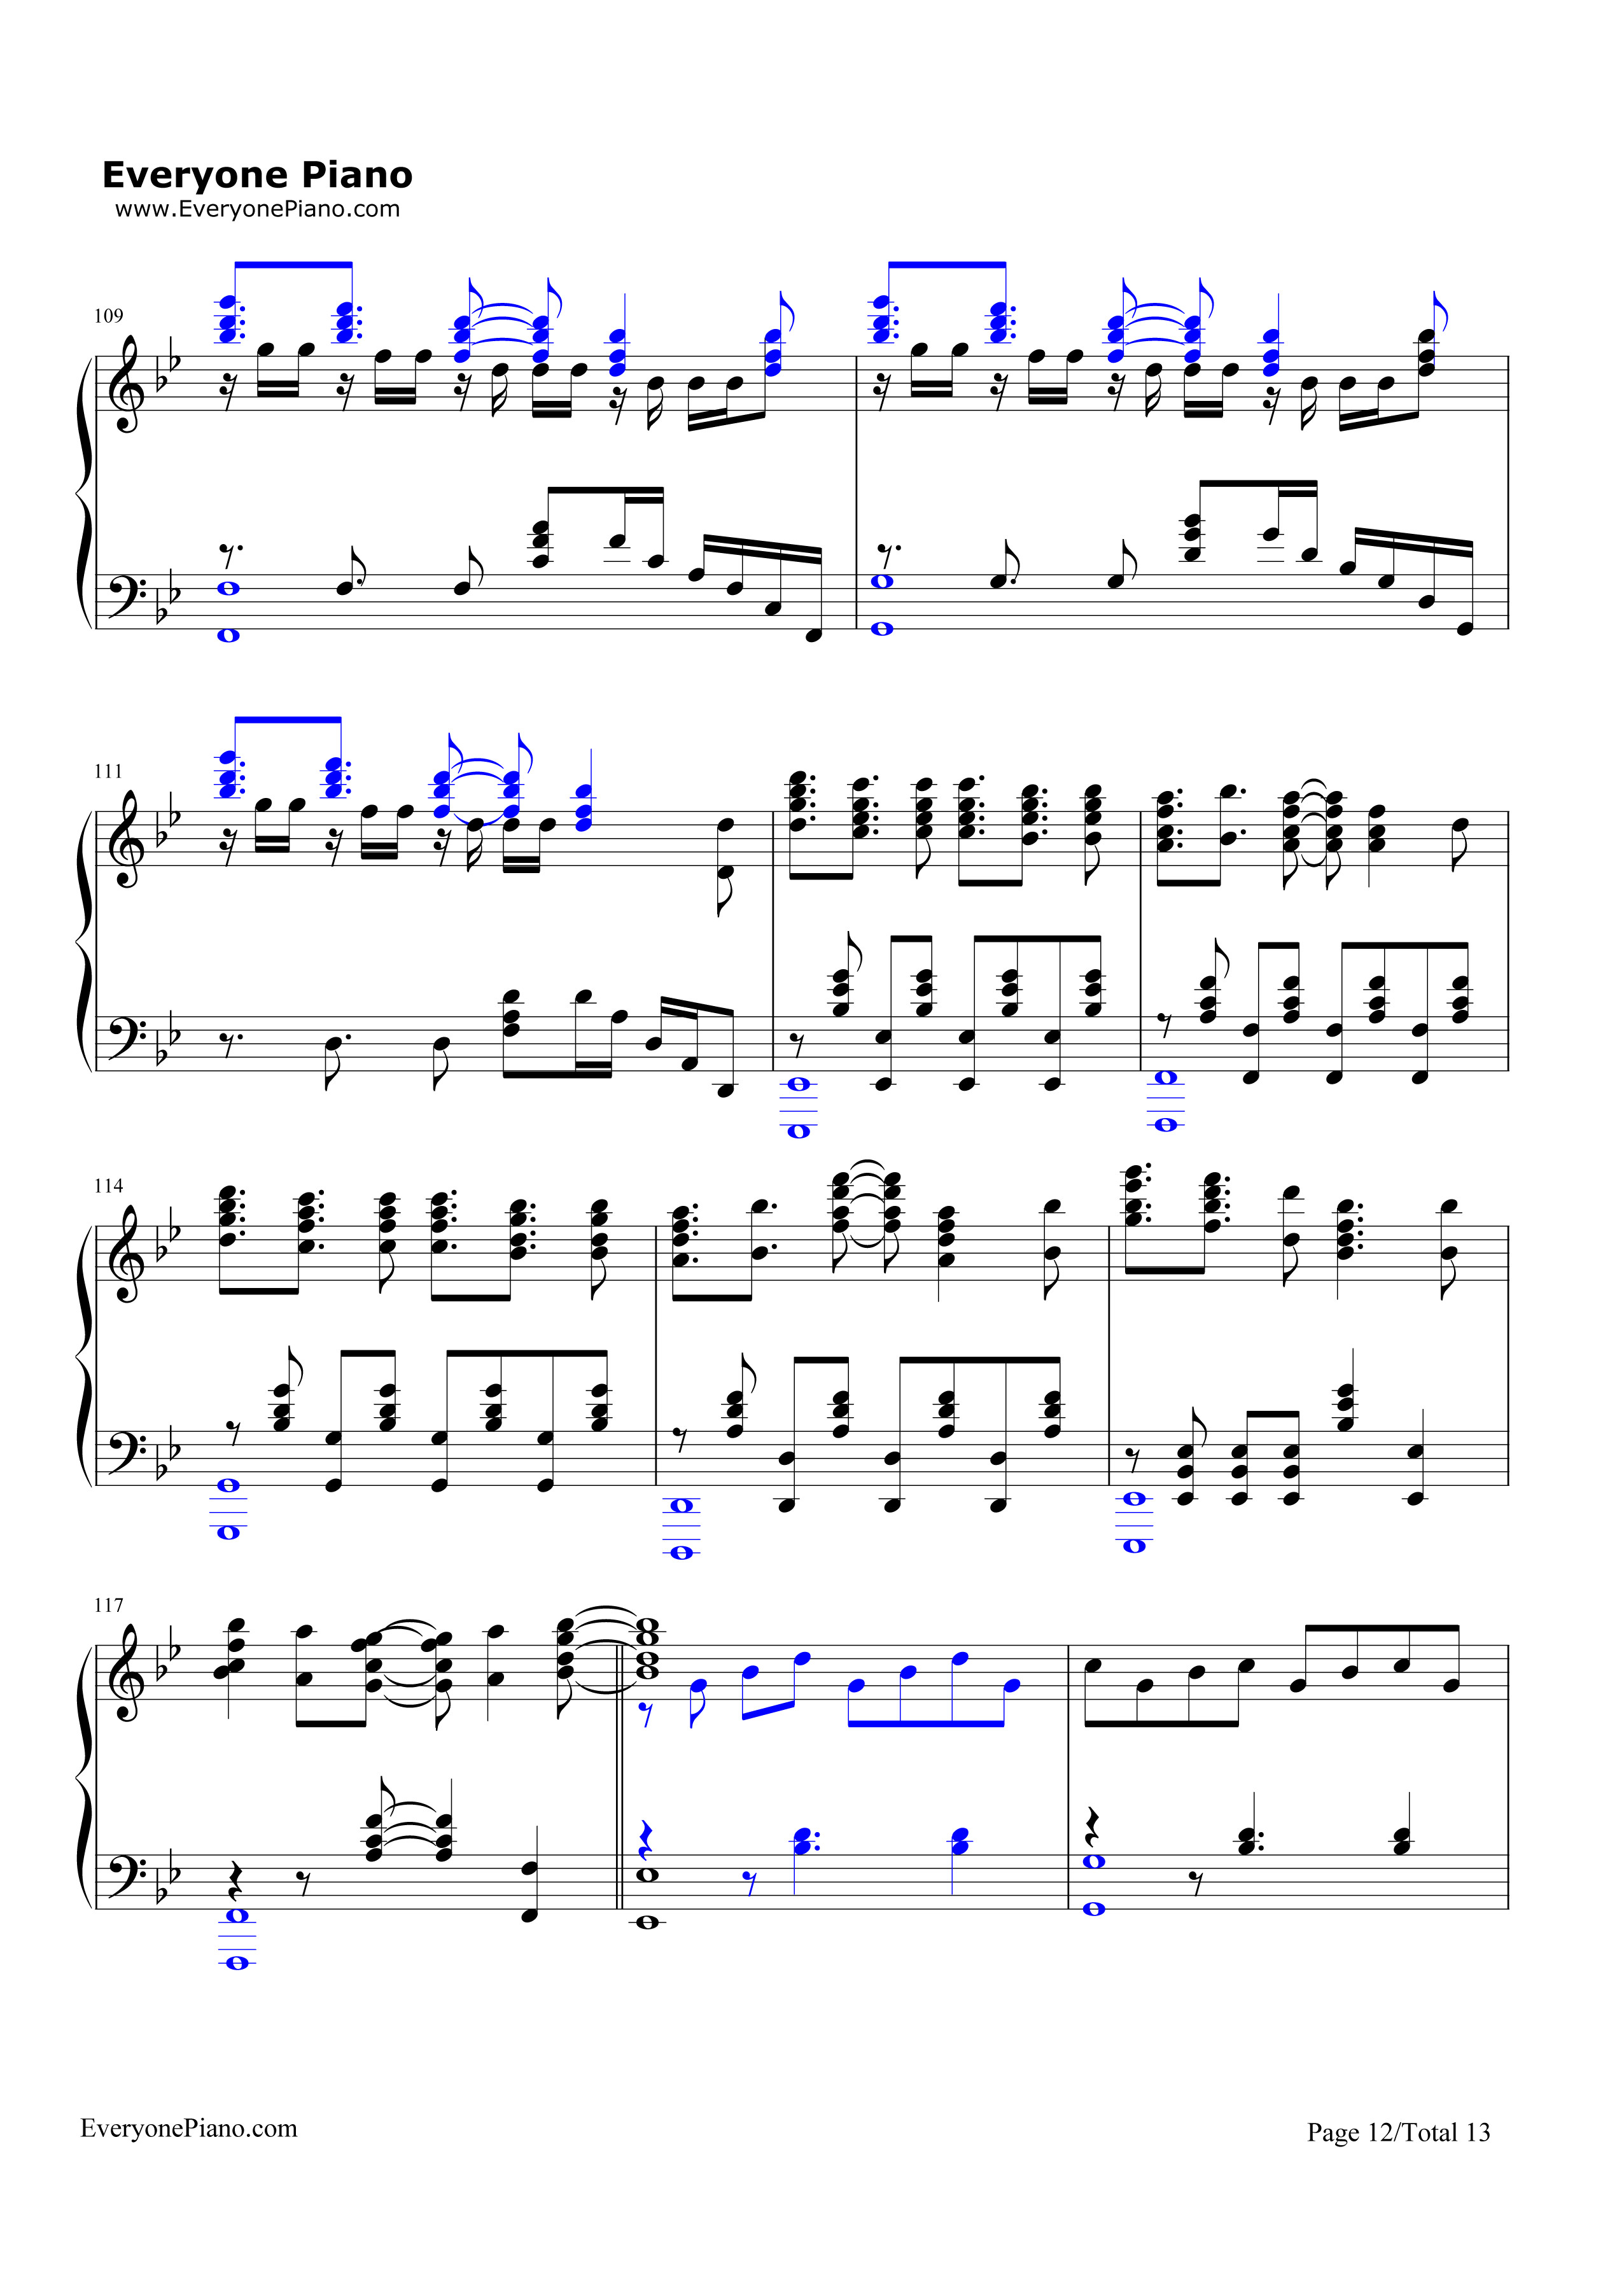 Unravel-Tokyo Ghoul Theme Stave Preview 12-Free Piano Sheet Music u0026 Piano Chords